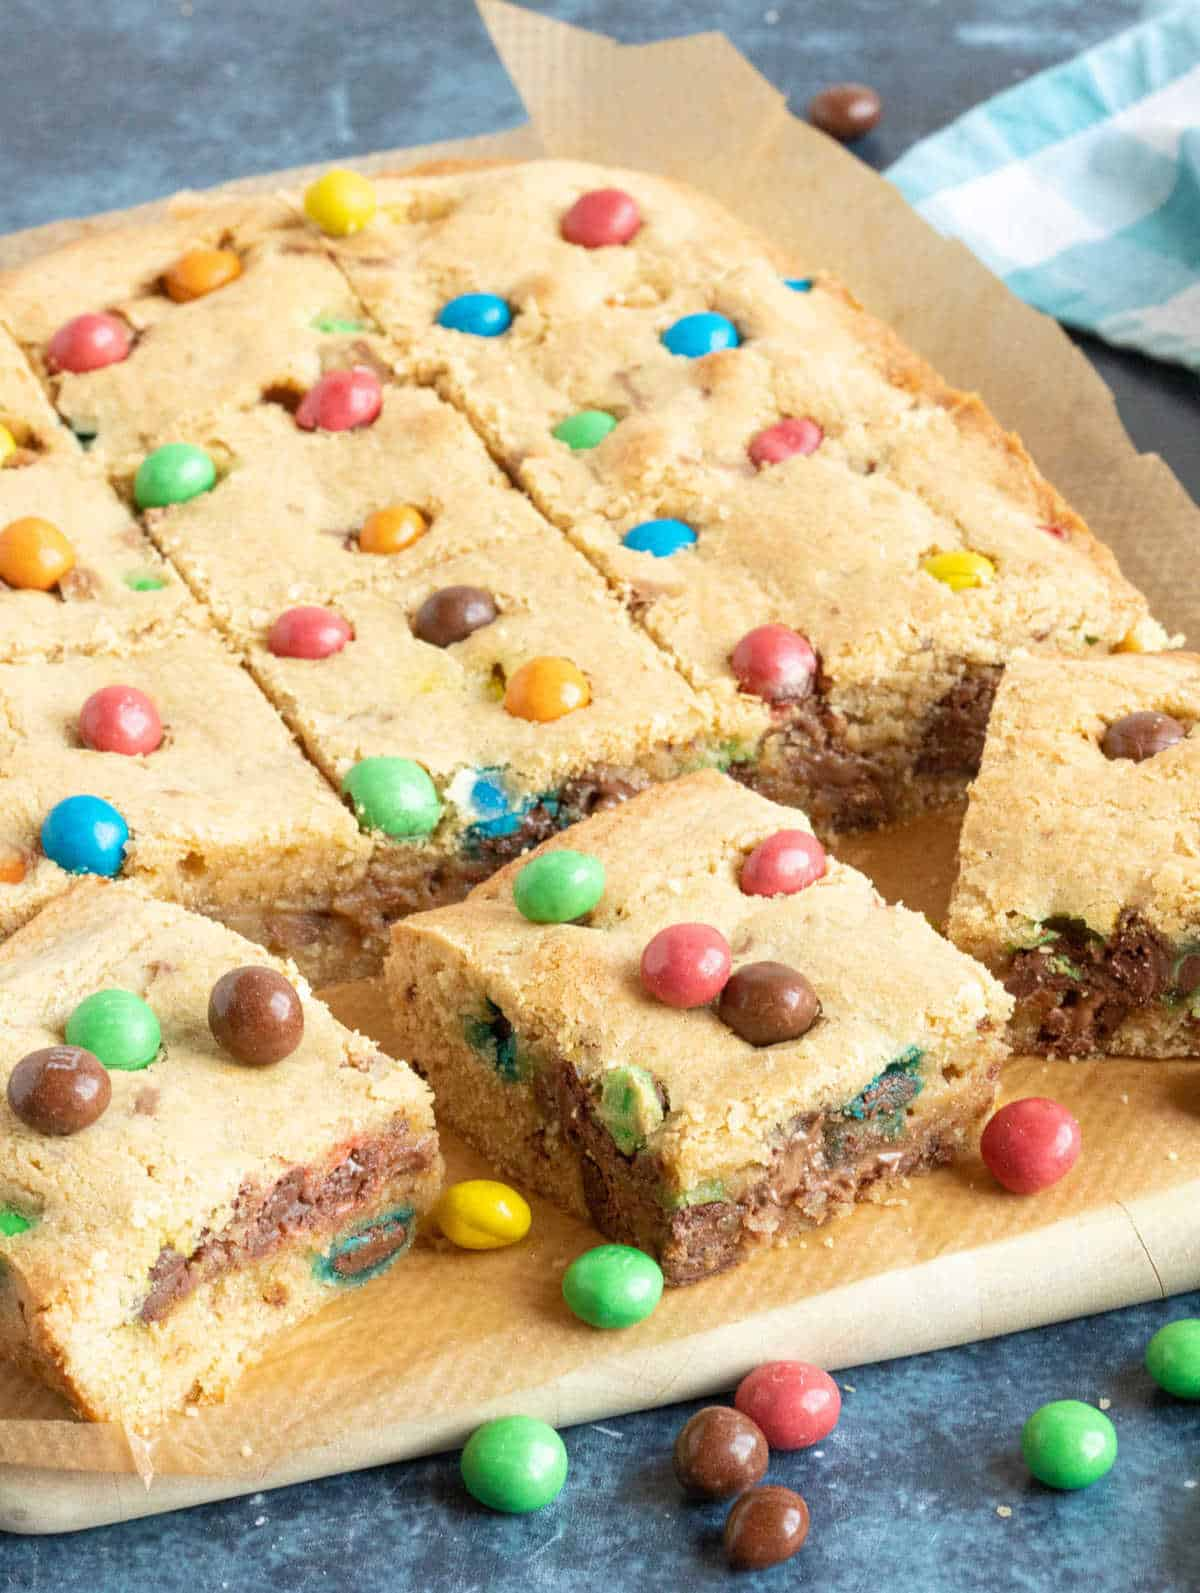 M&M cookie bars cut into slices.